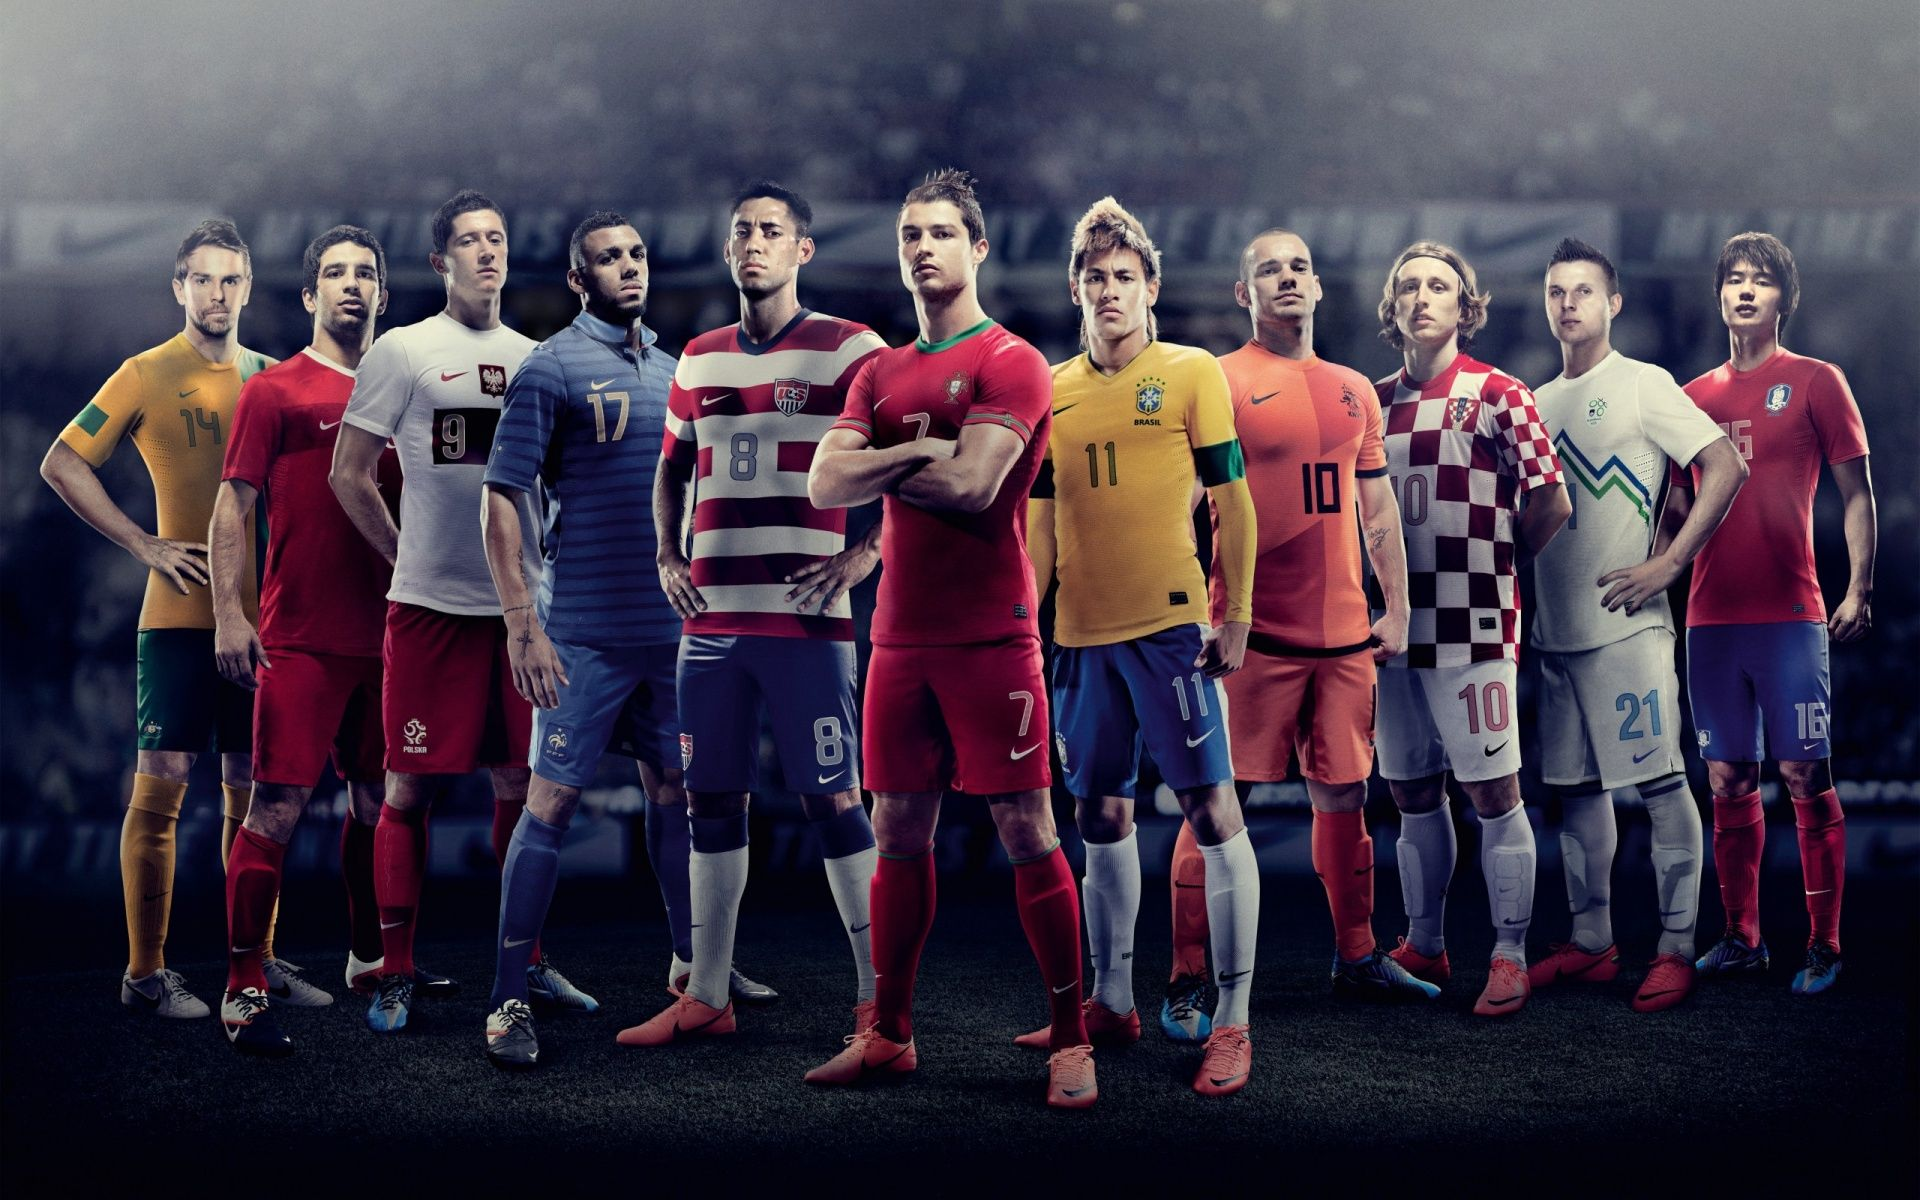 Football Players Hd Background 9 Hd Wallpapers Amagico Com Nike Football Football Soccer